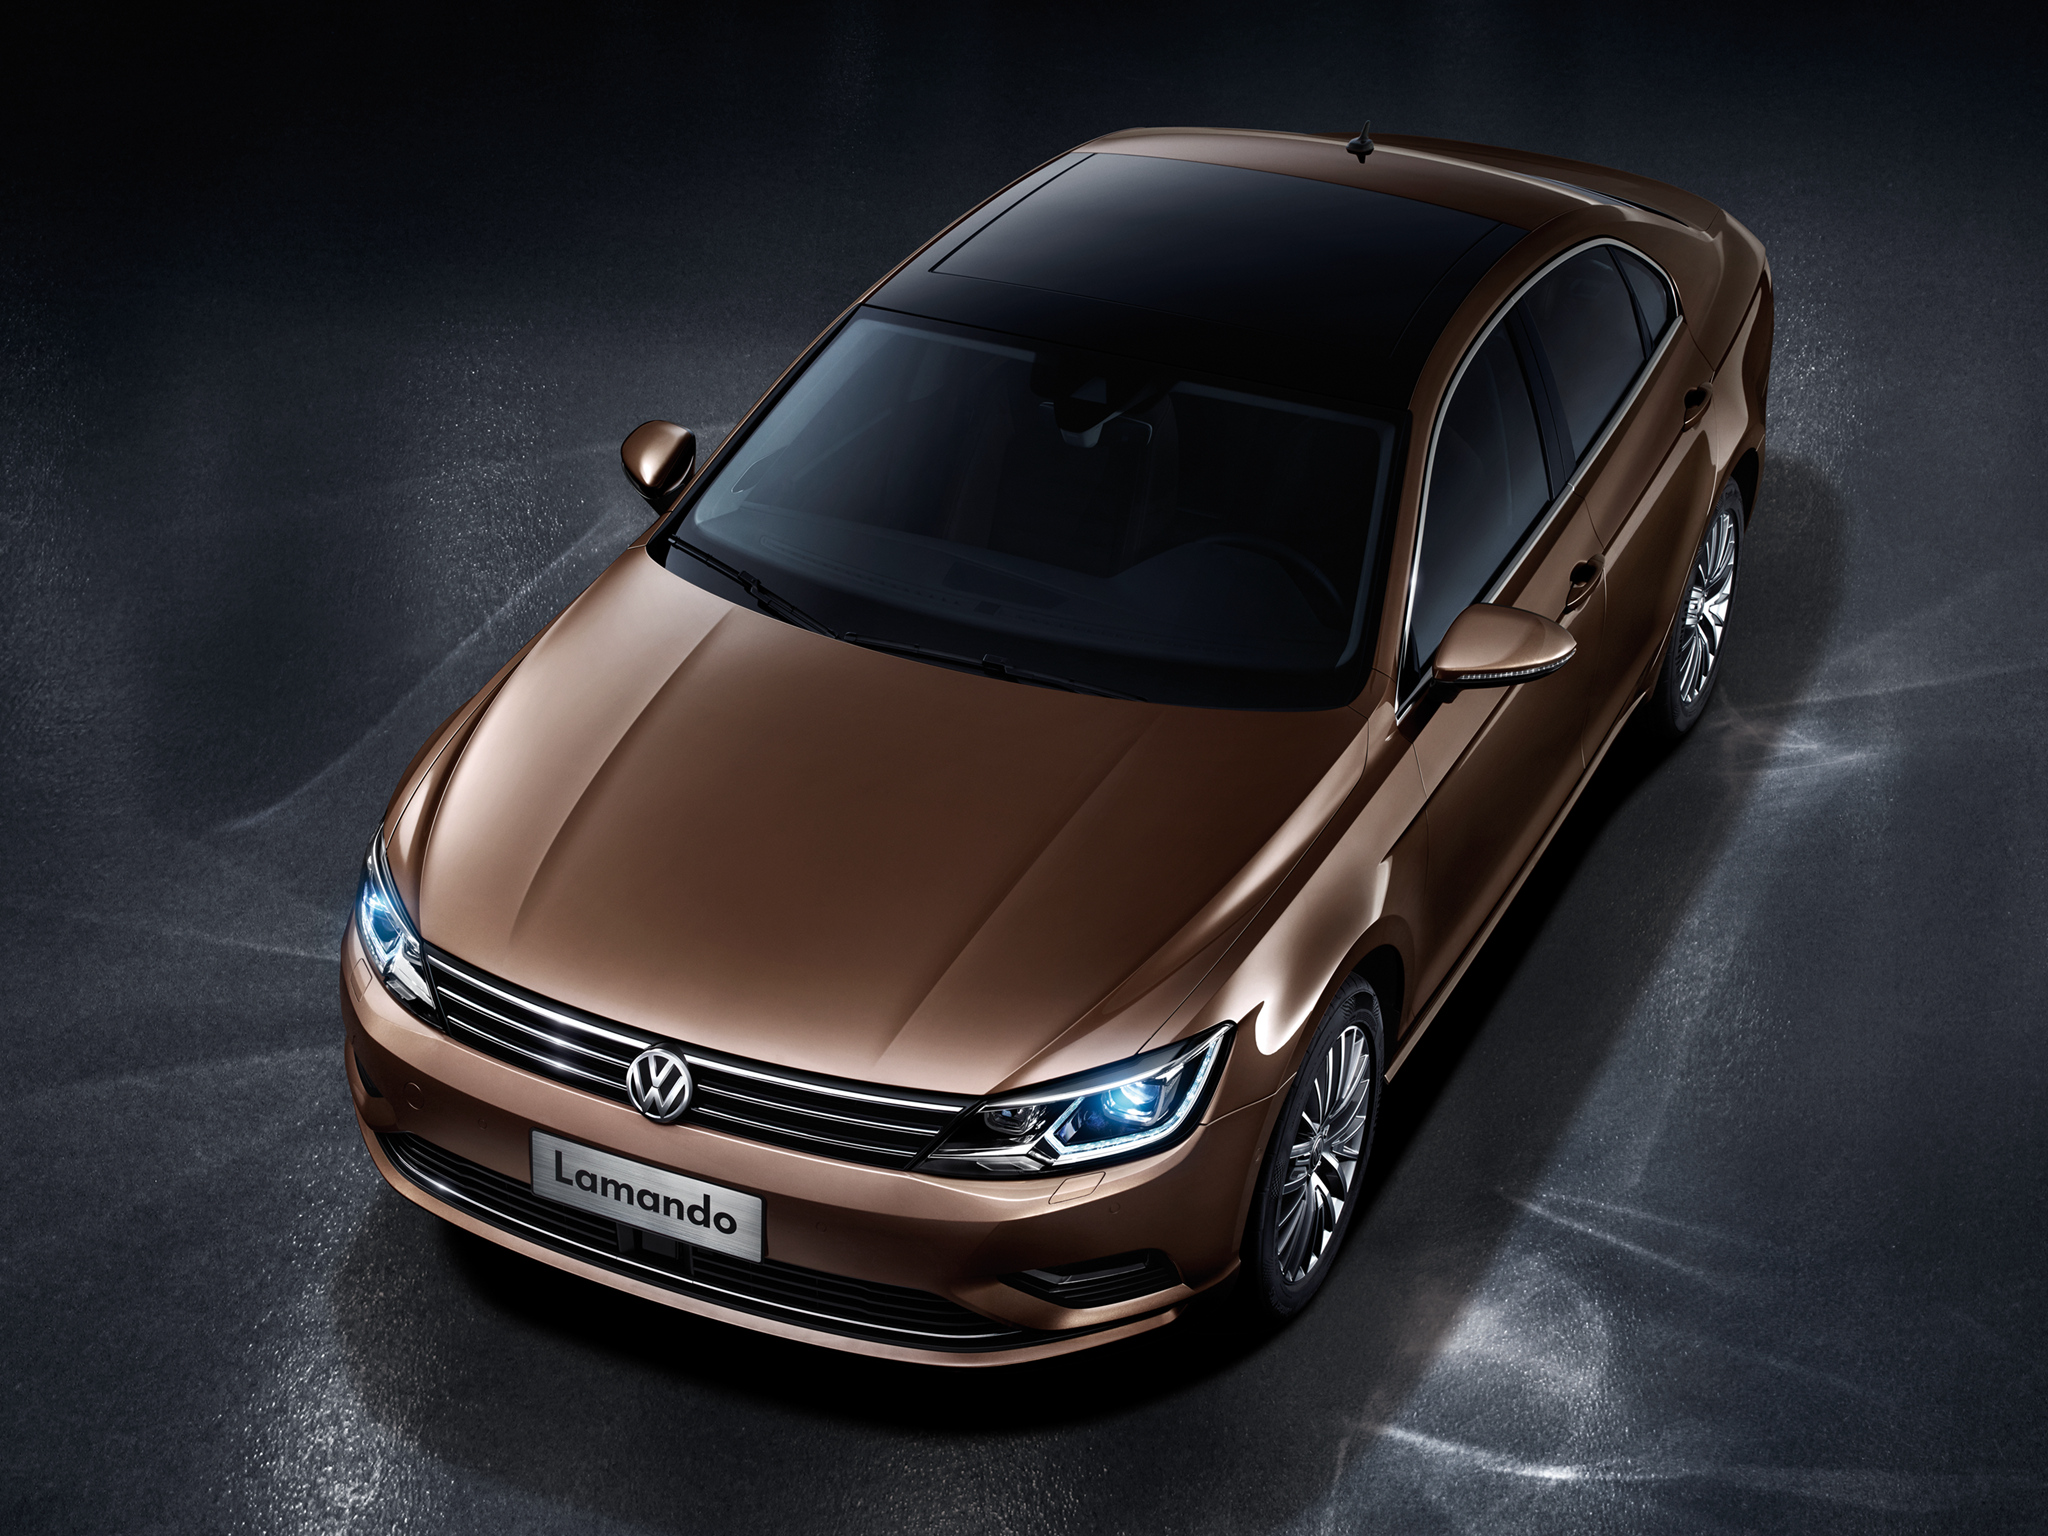 Volkswagen Lamando Four-Door Coupe Officially Revealed in China [Video] - autoevolution